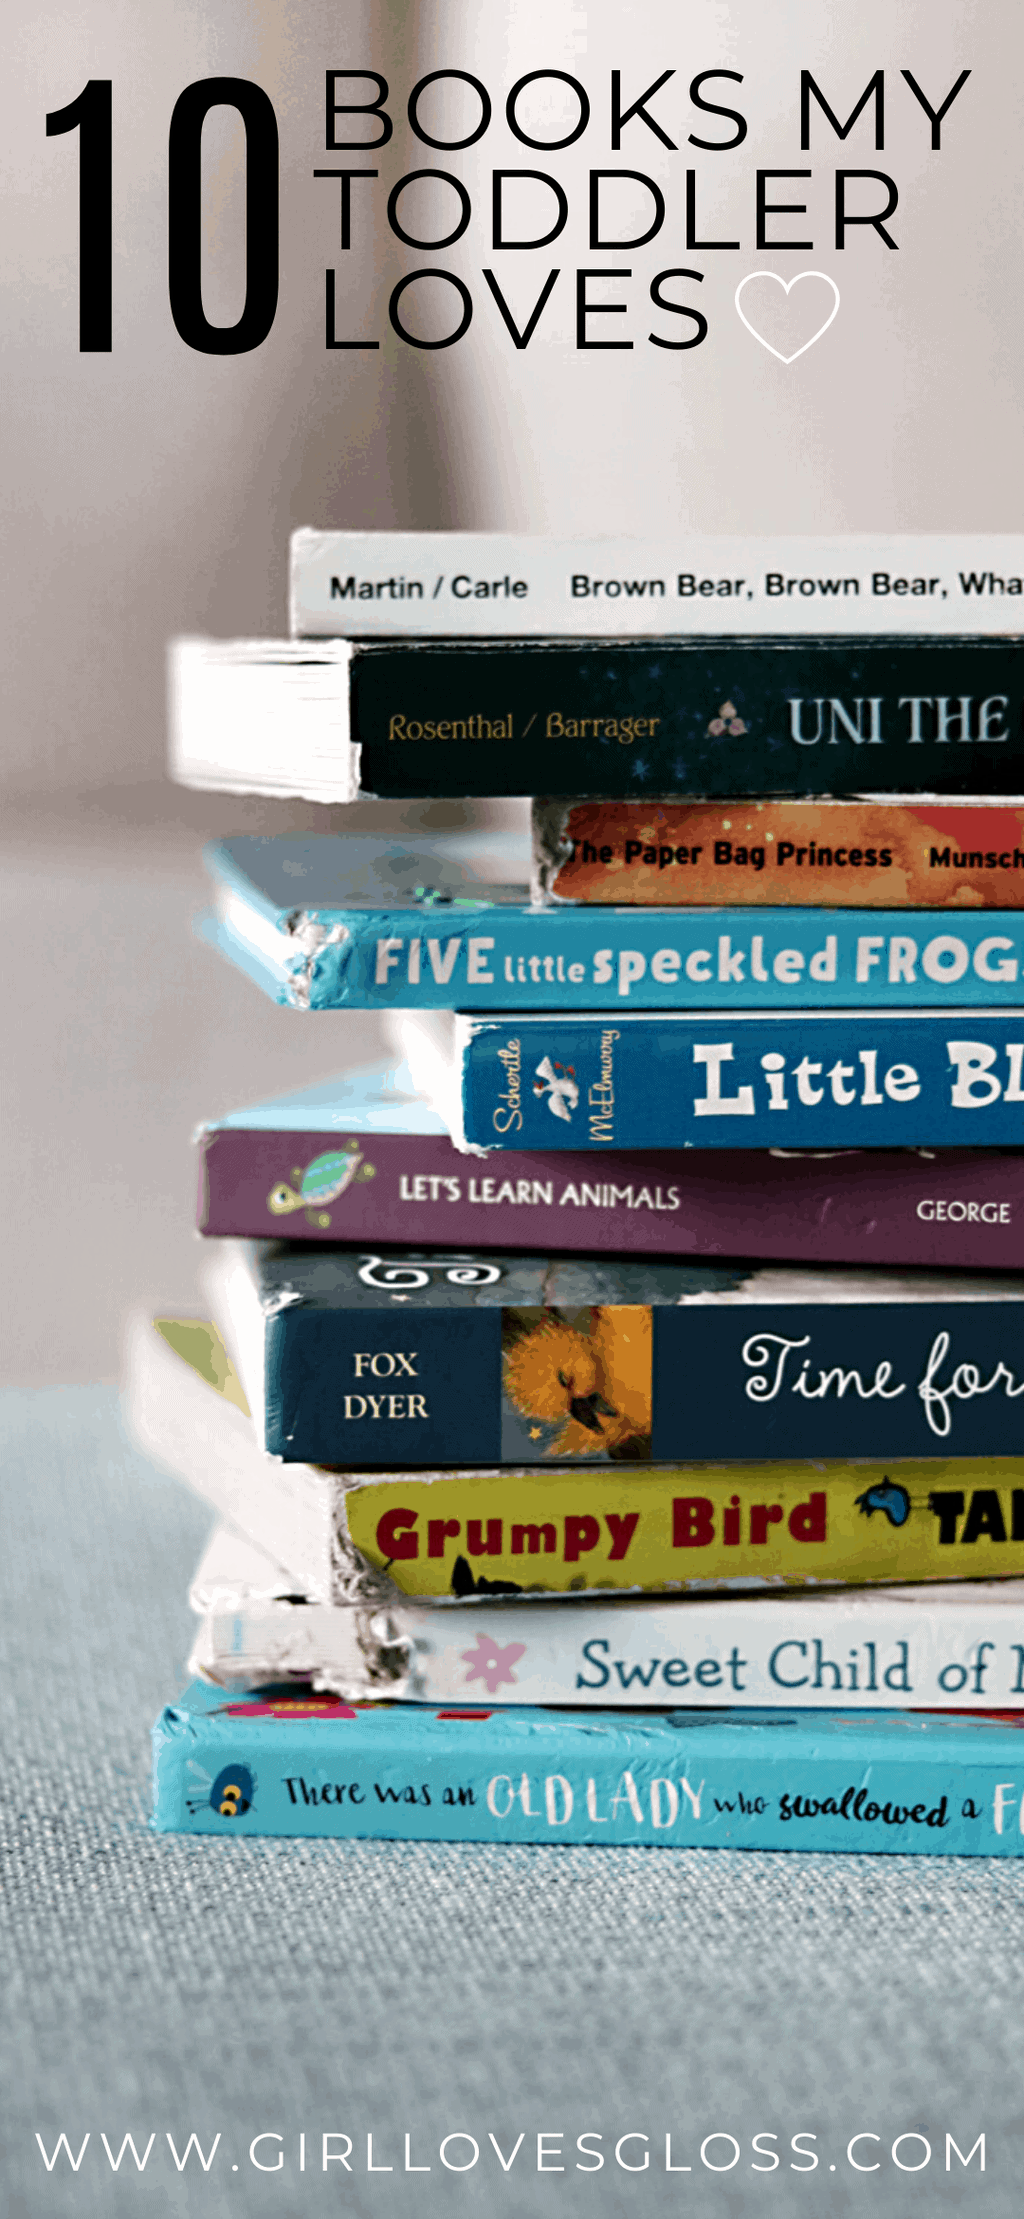 10 Best Toddler Books for Ages 0-2